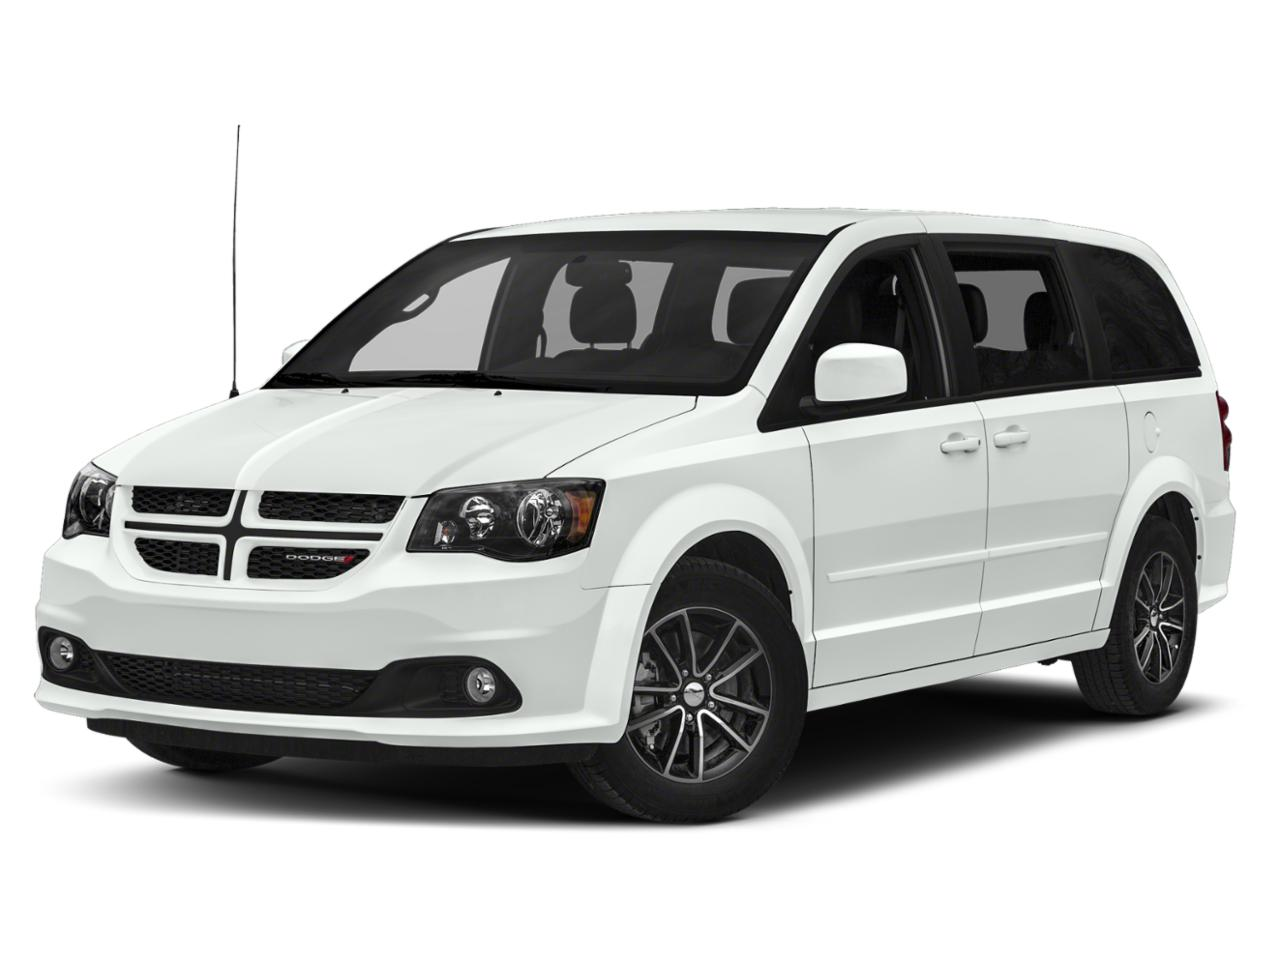 2019 Dodge Grand Caravan Vehicle Photo in Tucson, AZ 85711